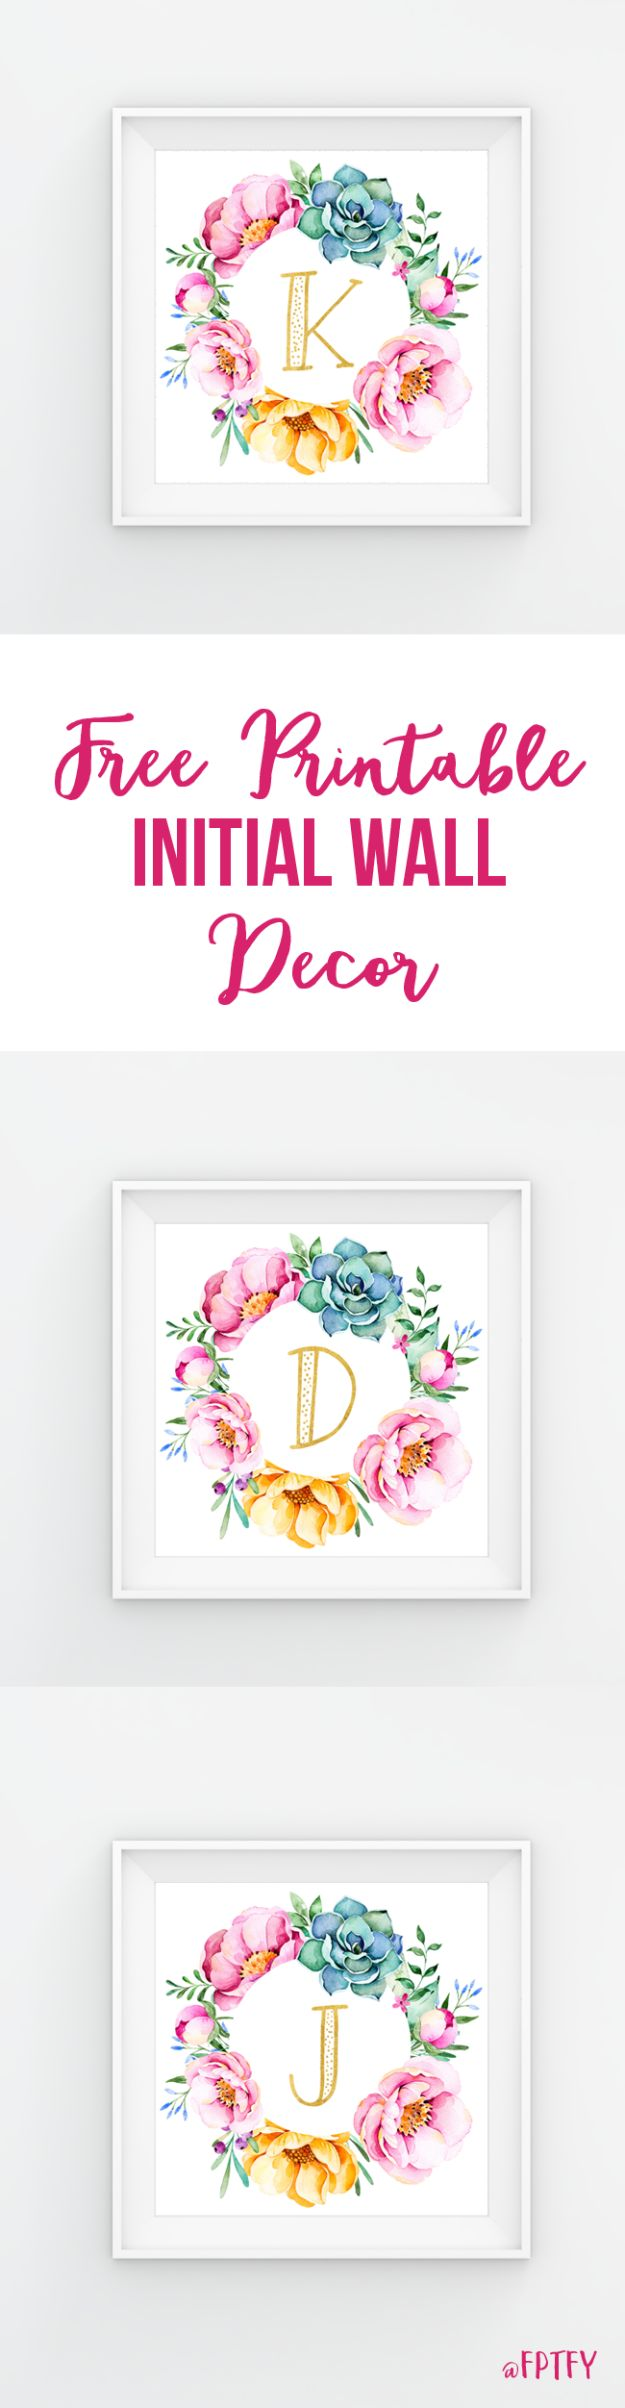 dining room printable art. Best Free Printables For Your Walls - Printable Initial Wall Decor Prints Dining Room Art